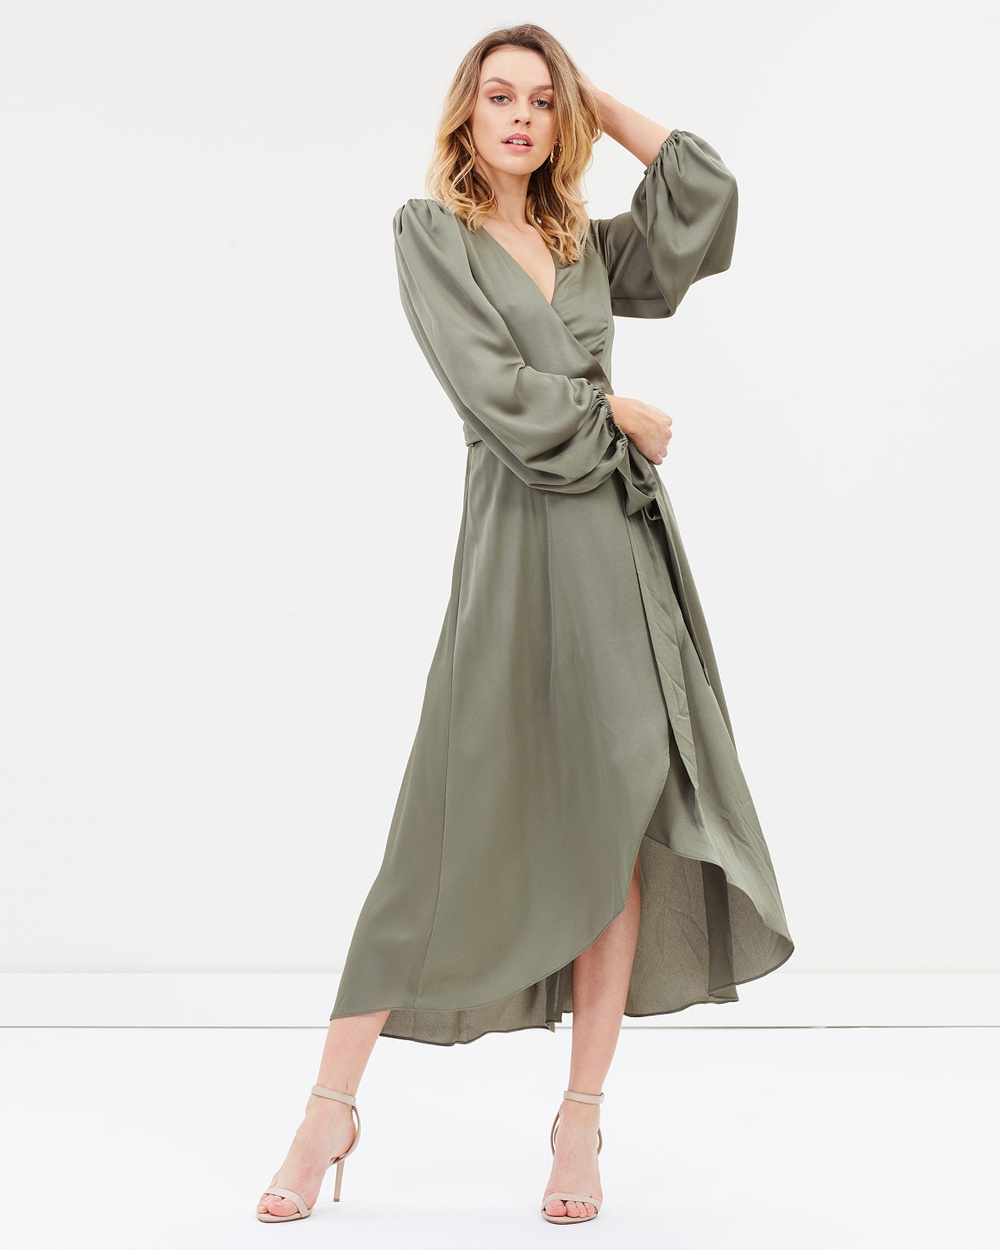 Shona Joy Wrap Midi Dress Dresses Moss Wrap Midi Dress